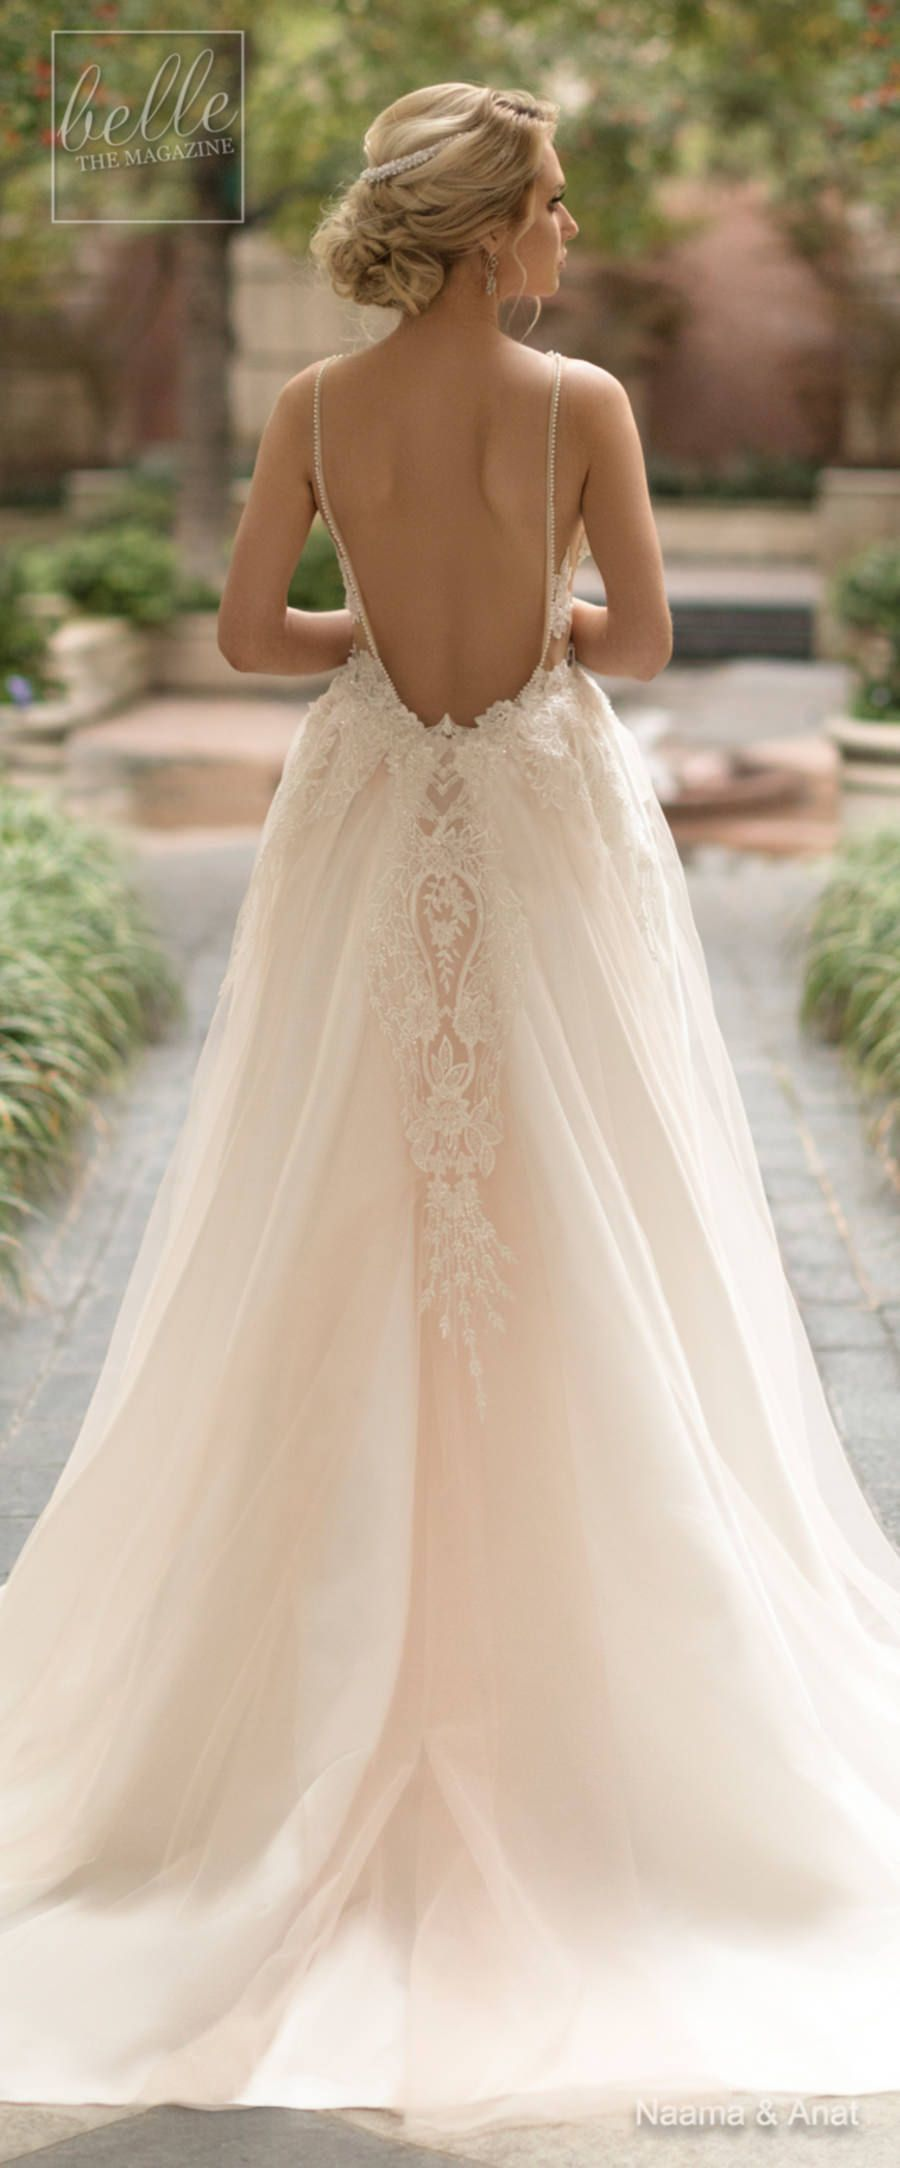 a2dce9066c Naama and Anat Wedding Dress Collection 2019 - Dancing Up the Aisle - Salsa  an elegant lace fitted sleeveless with strap deep plunging v neck heavily  ...